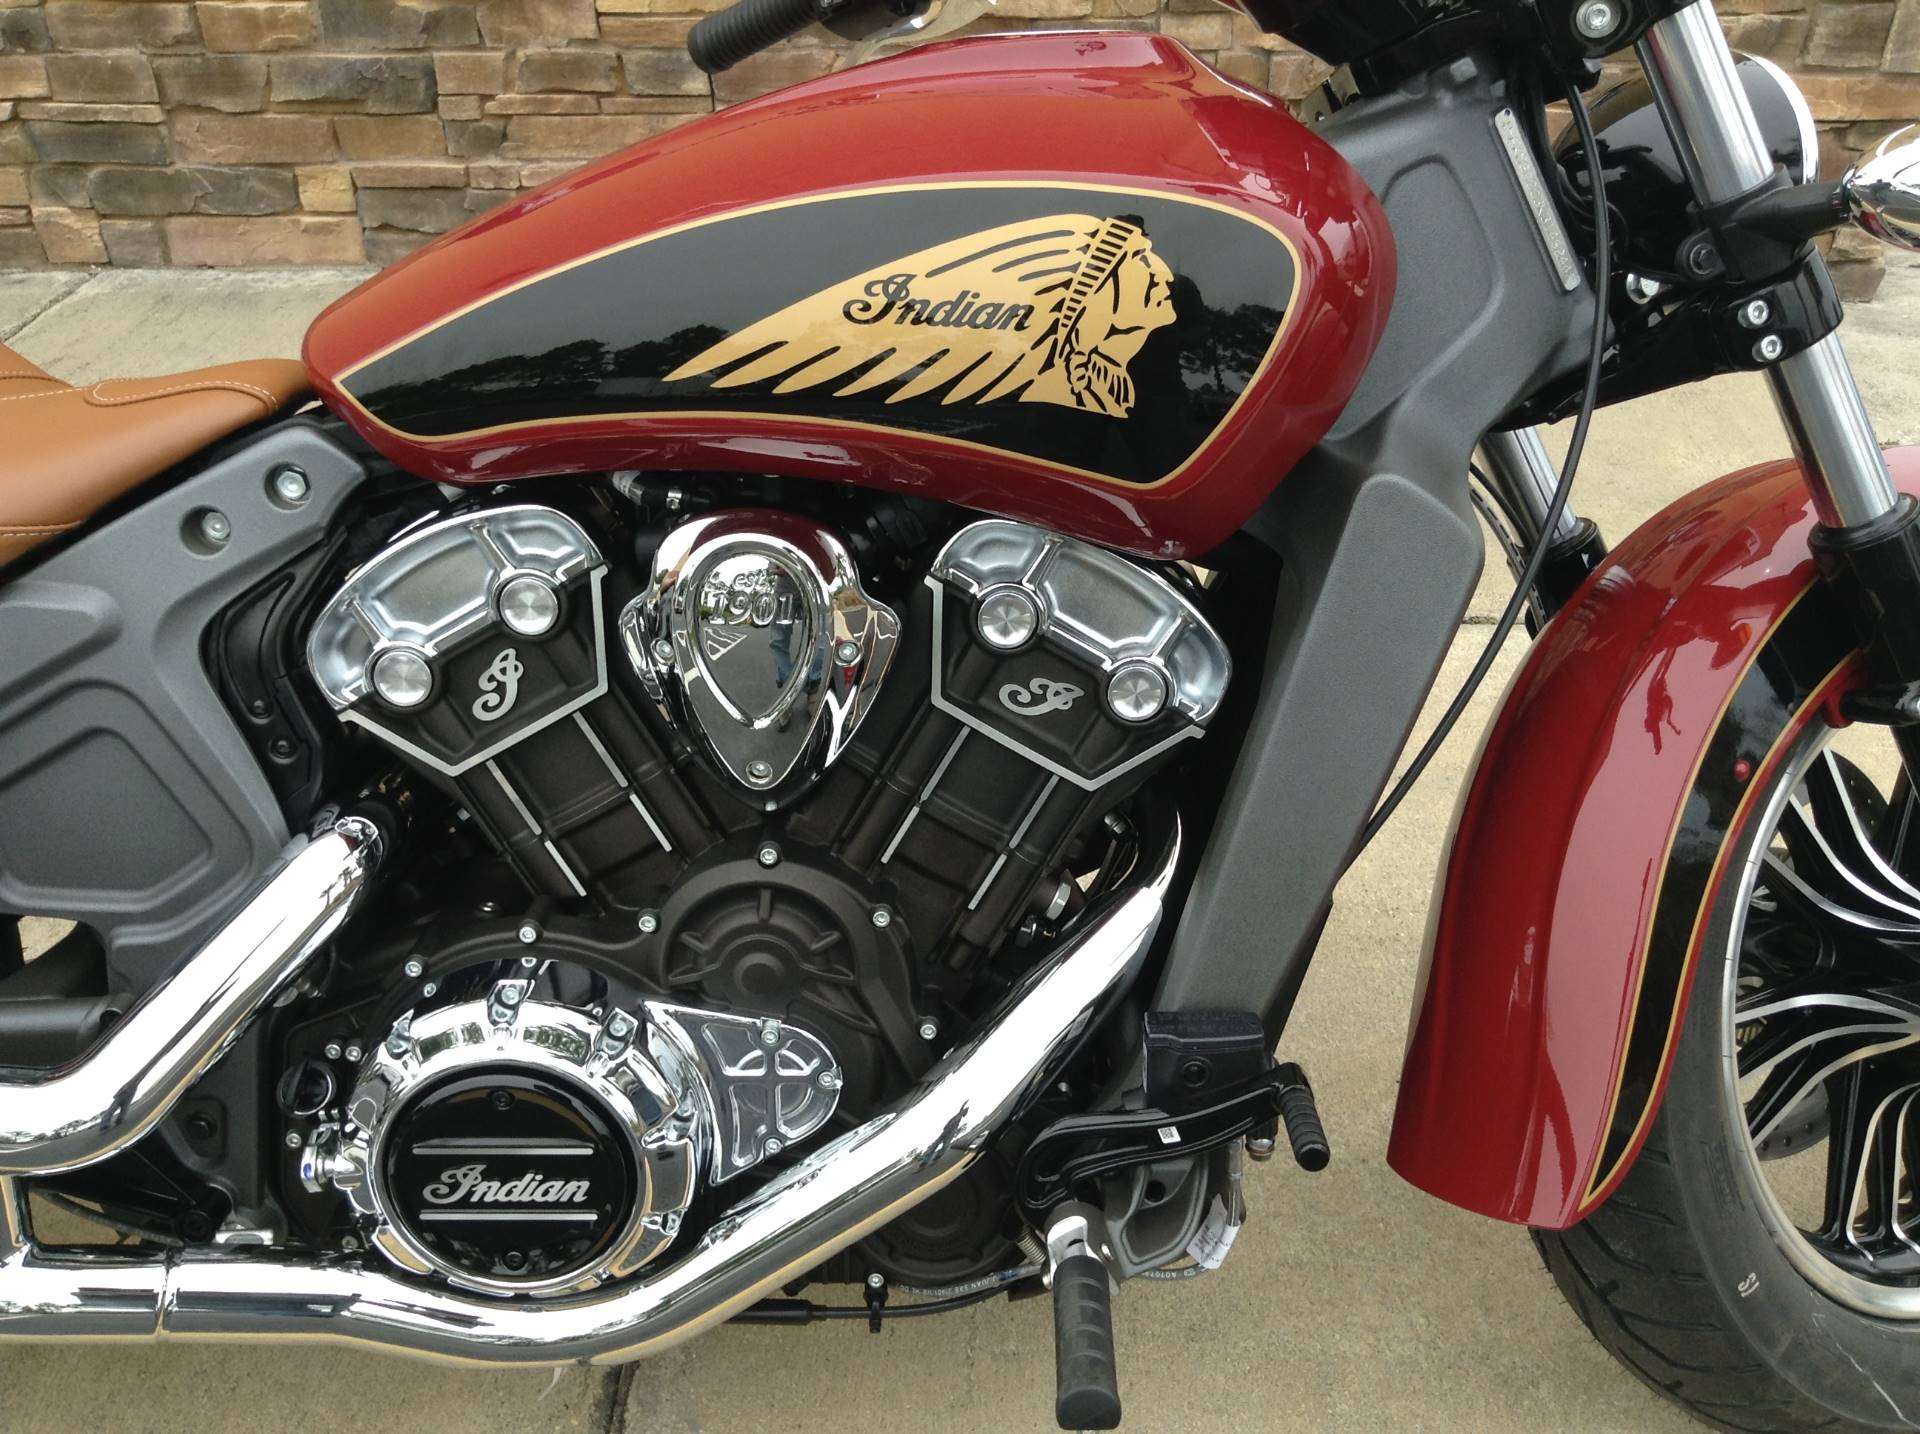 2019 Indian SCOUT ABS in Panama City Beach, Florida - Photo 8